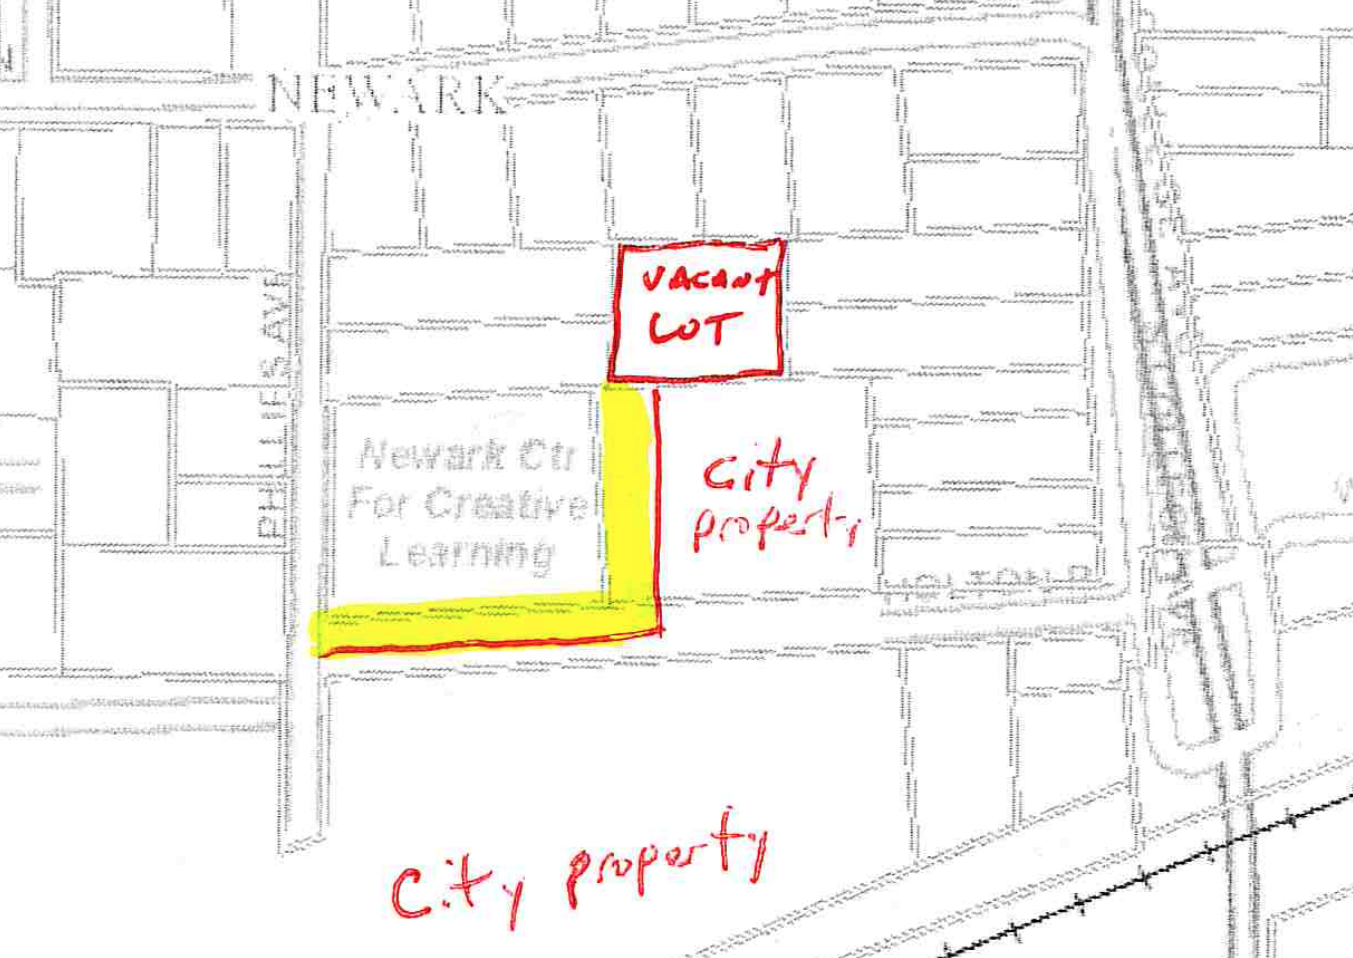 NCCL land purchase